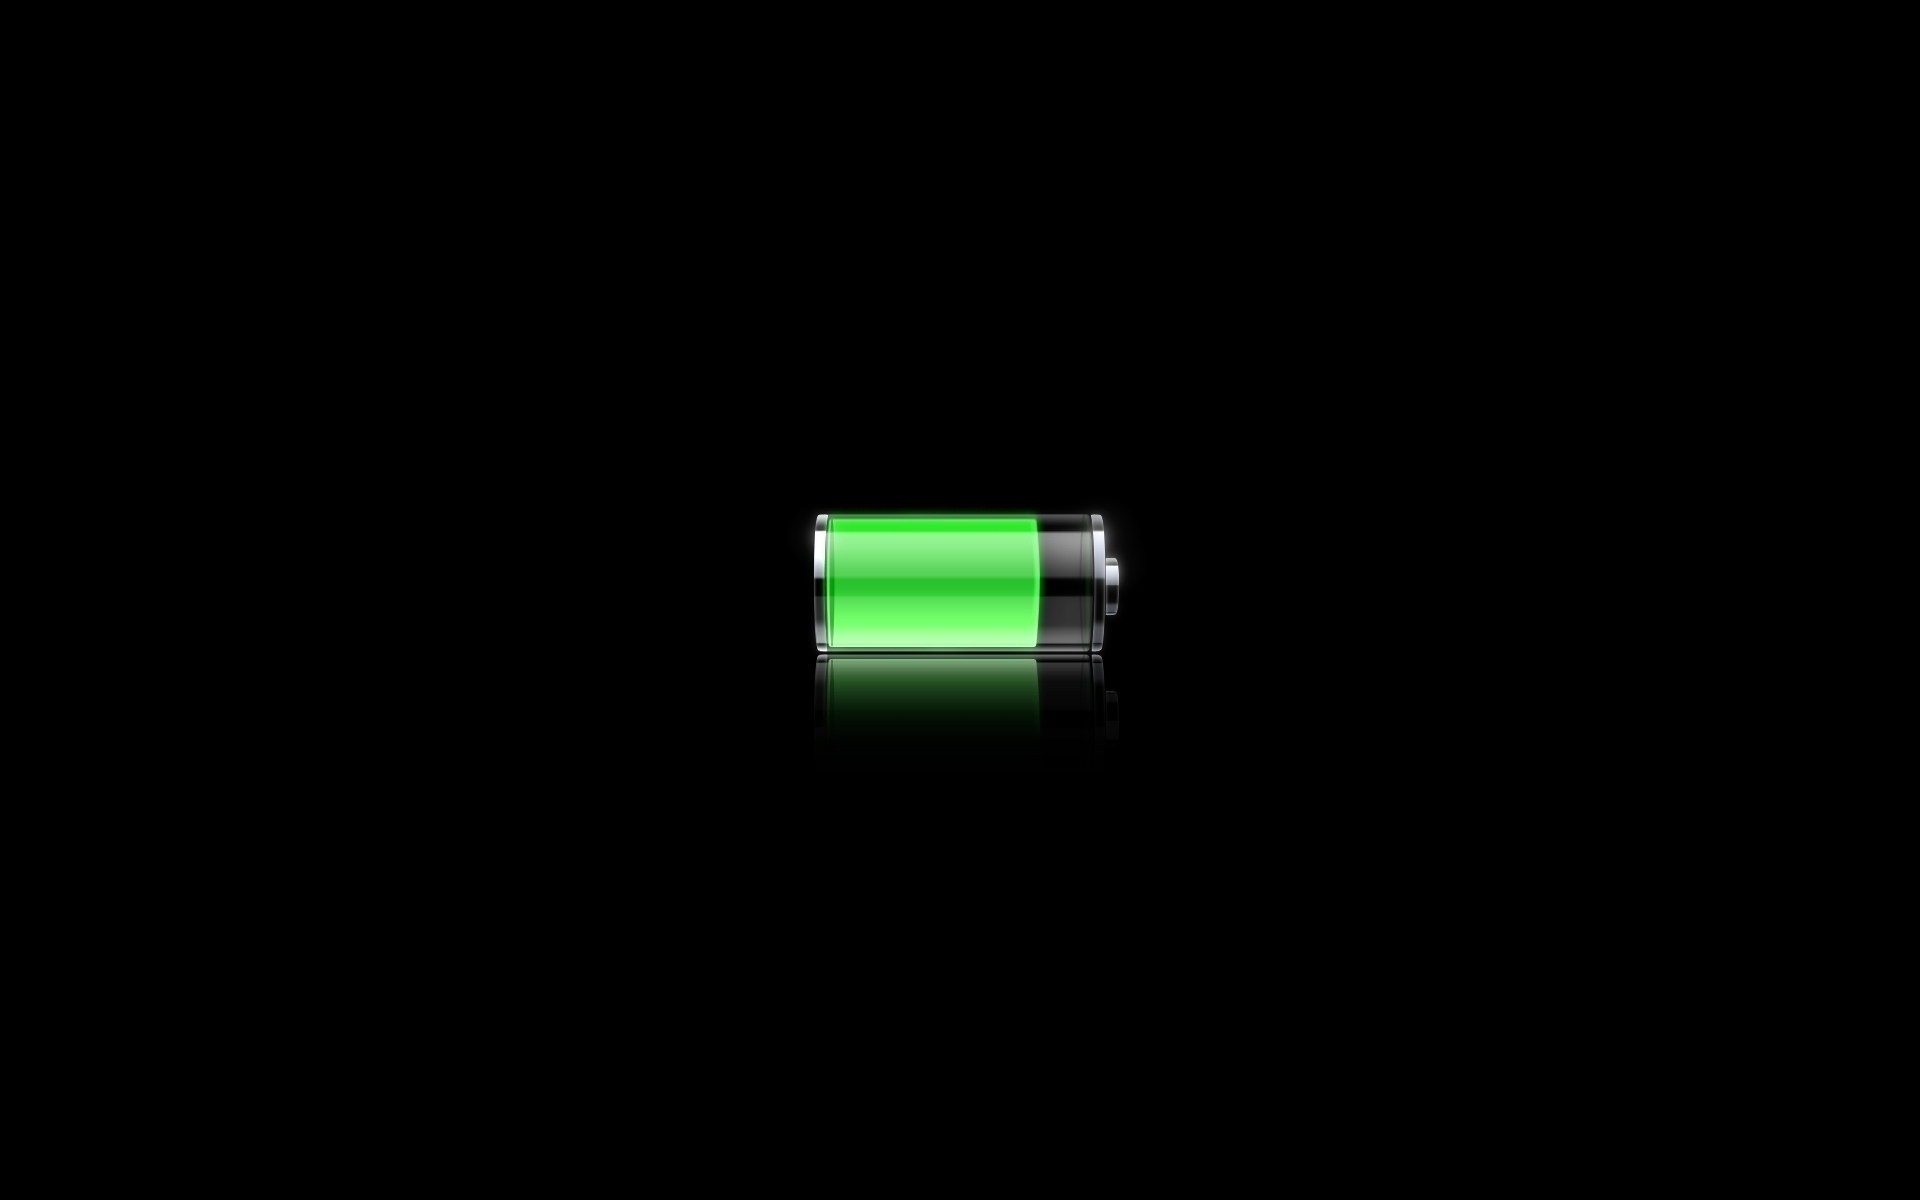 Iphone battery Wallpaper ImageBankbiz 1920x1200